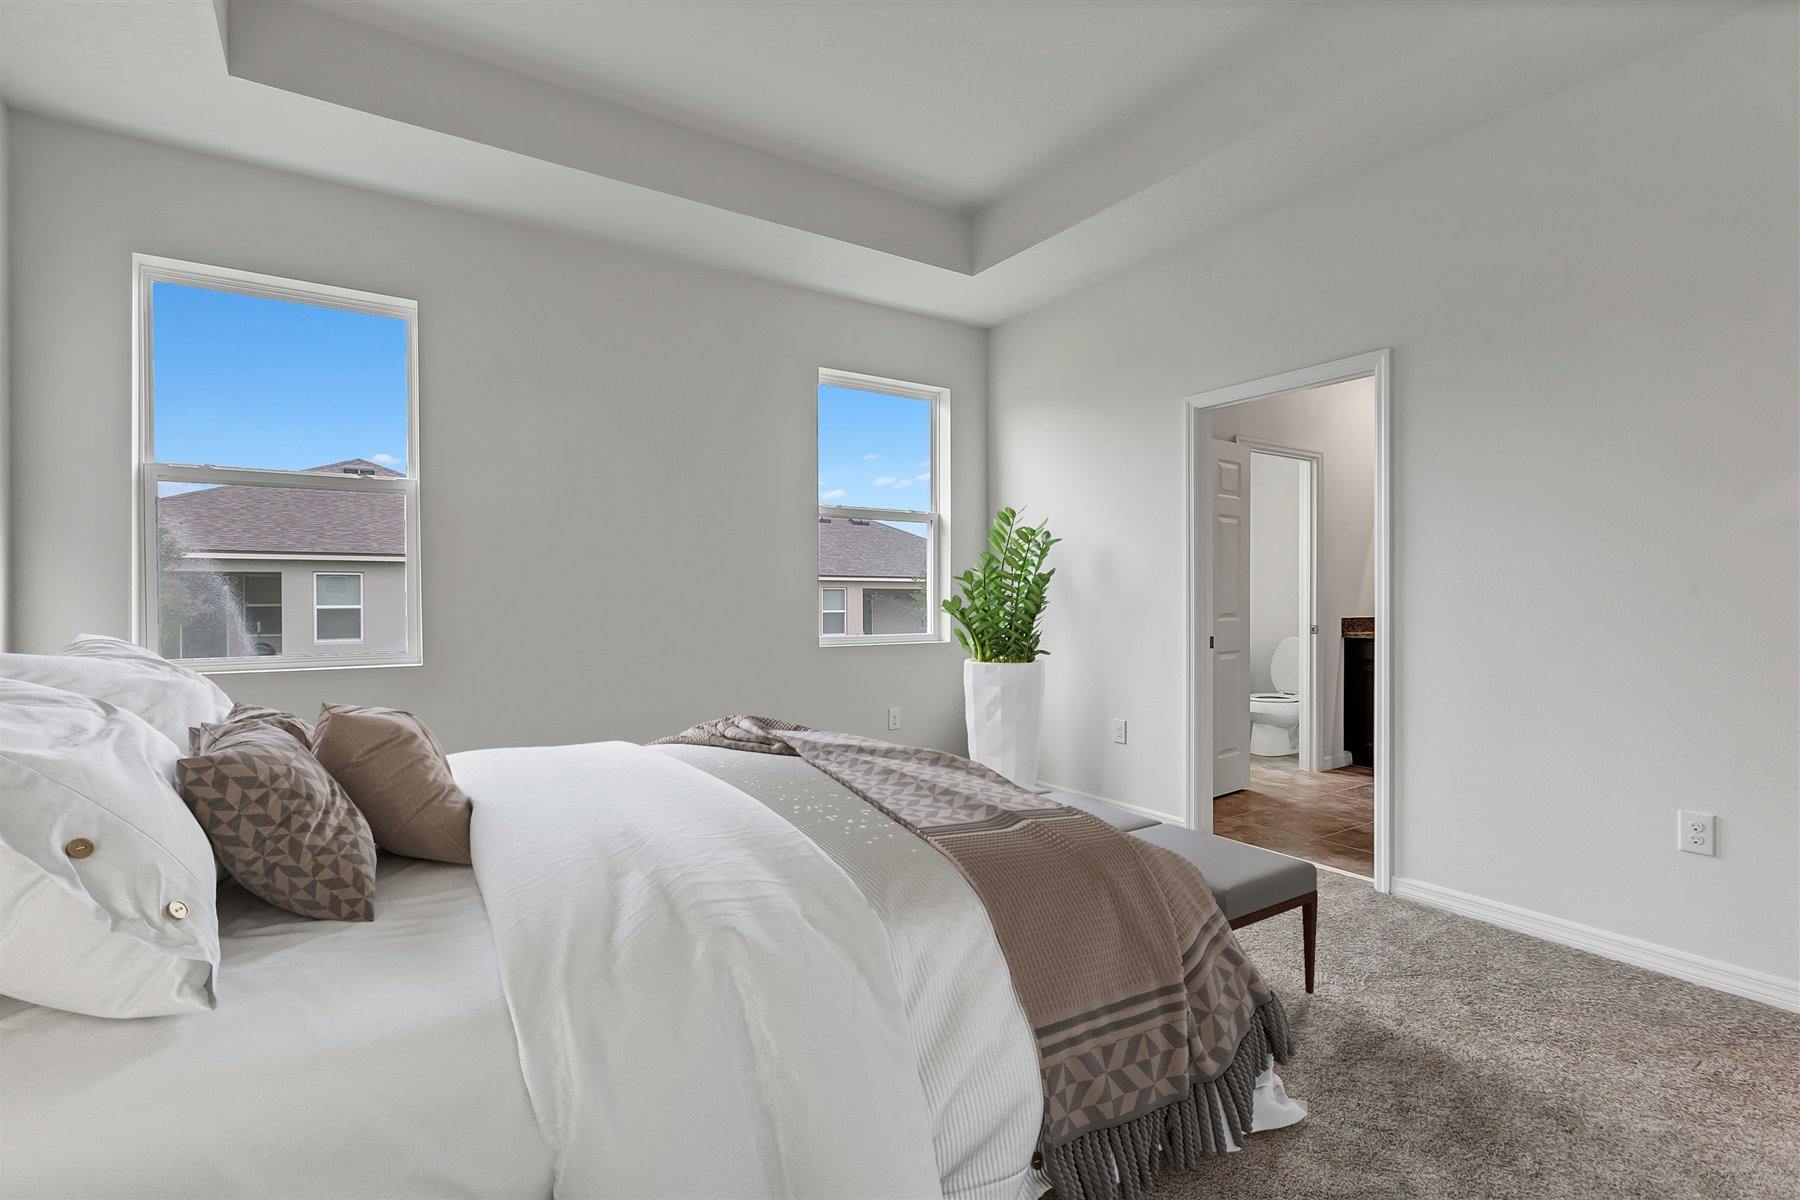 Emma Plan Bedroom at Waterbrooke in Clermont Florida by Mattamy Homes